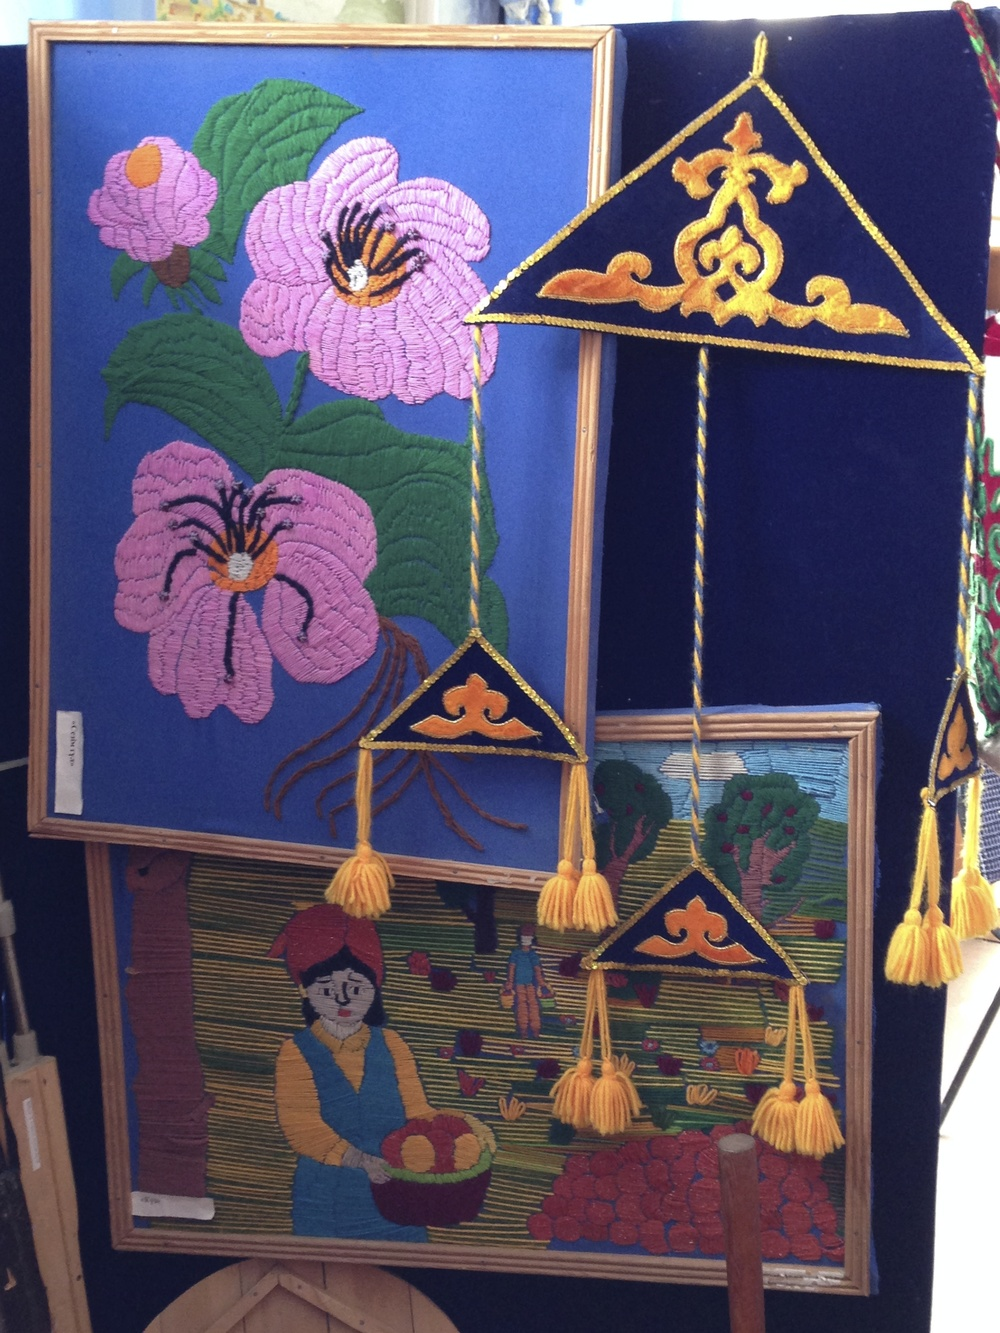 An example of some of the traditional crafts on display, as contributed by the students